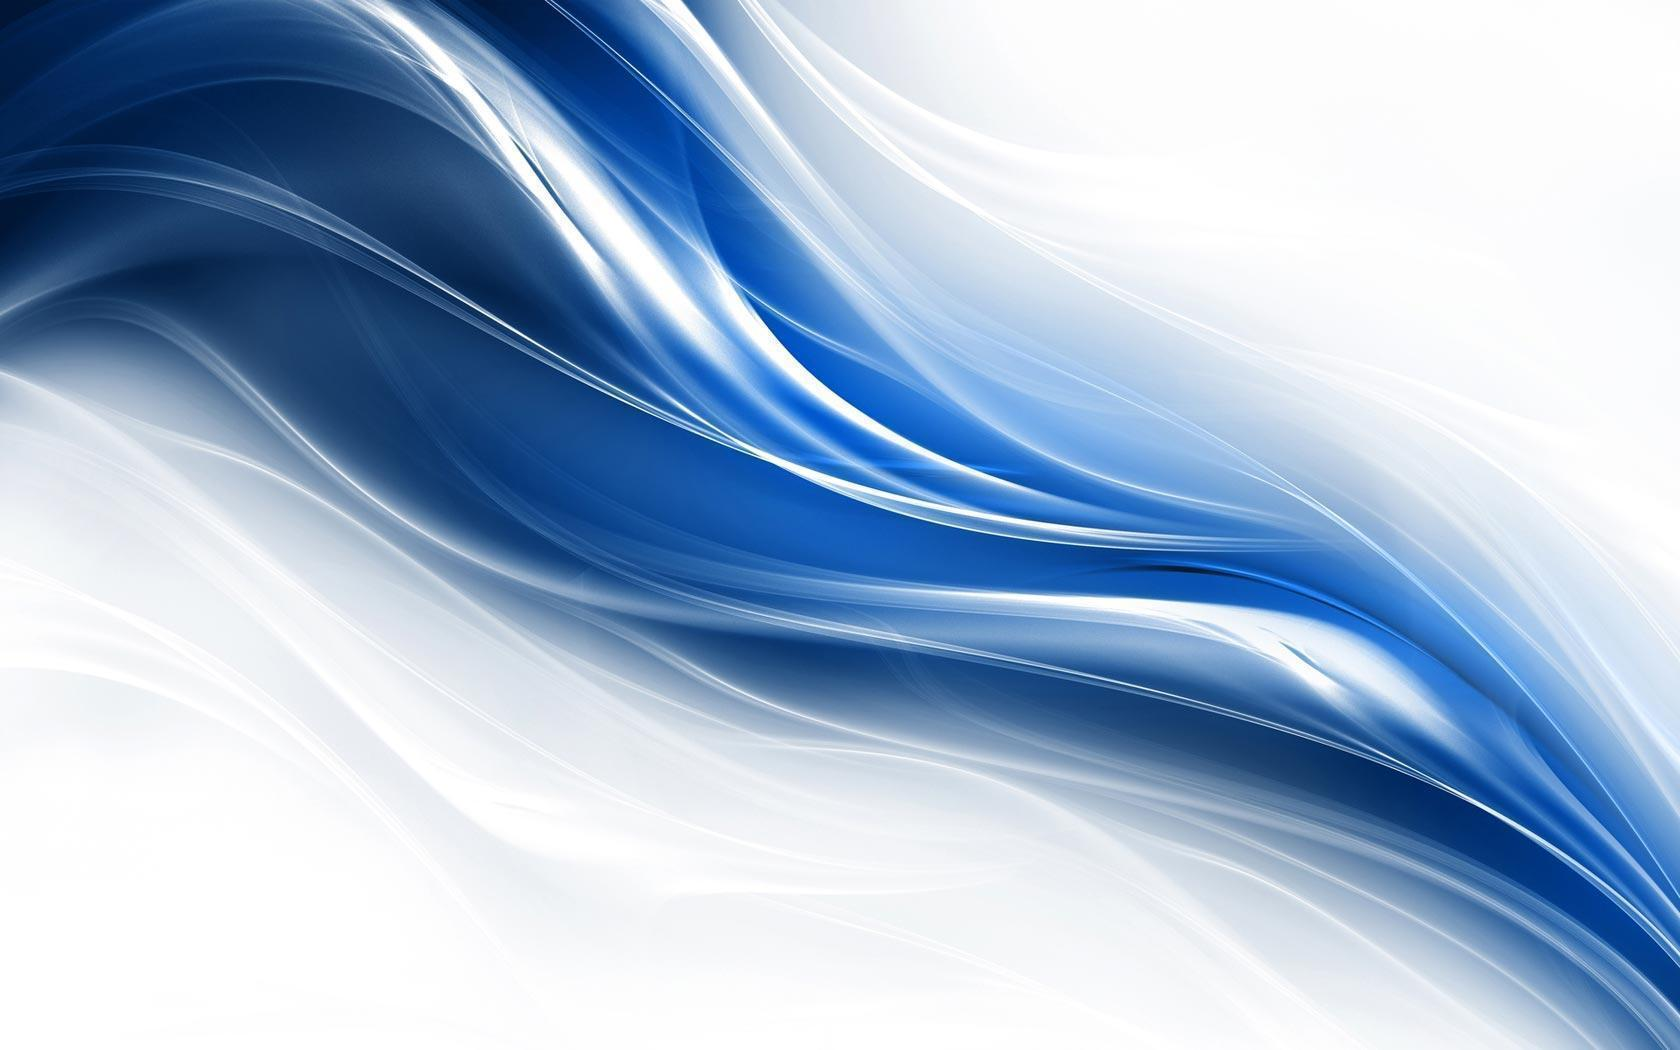 Blue and White HD Wallpaper